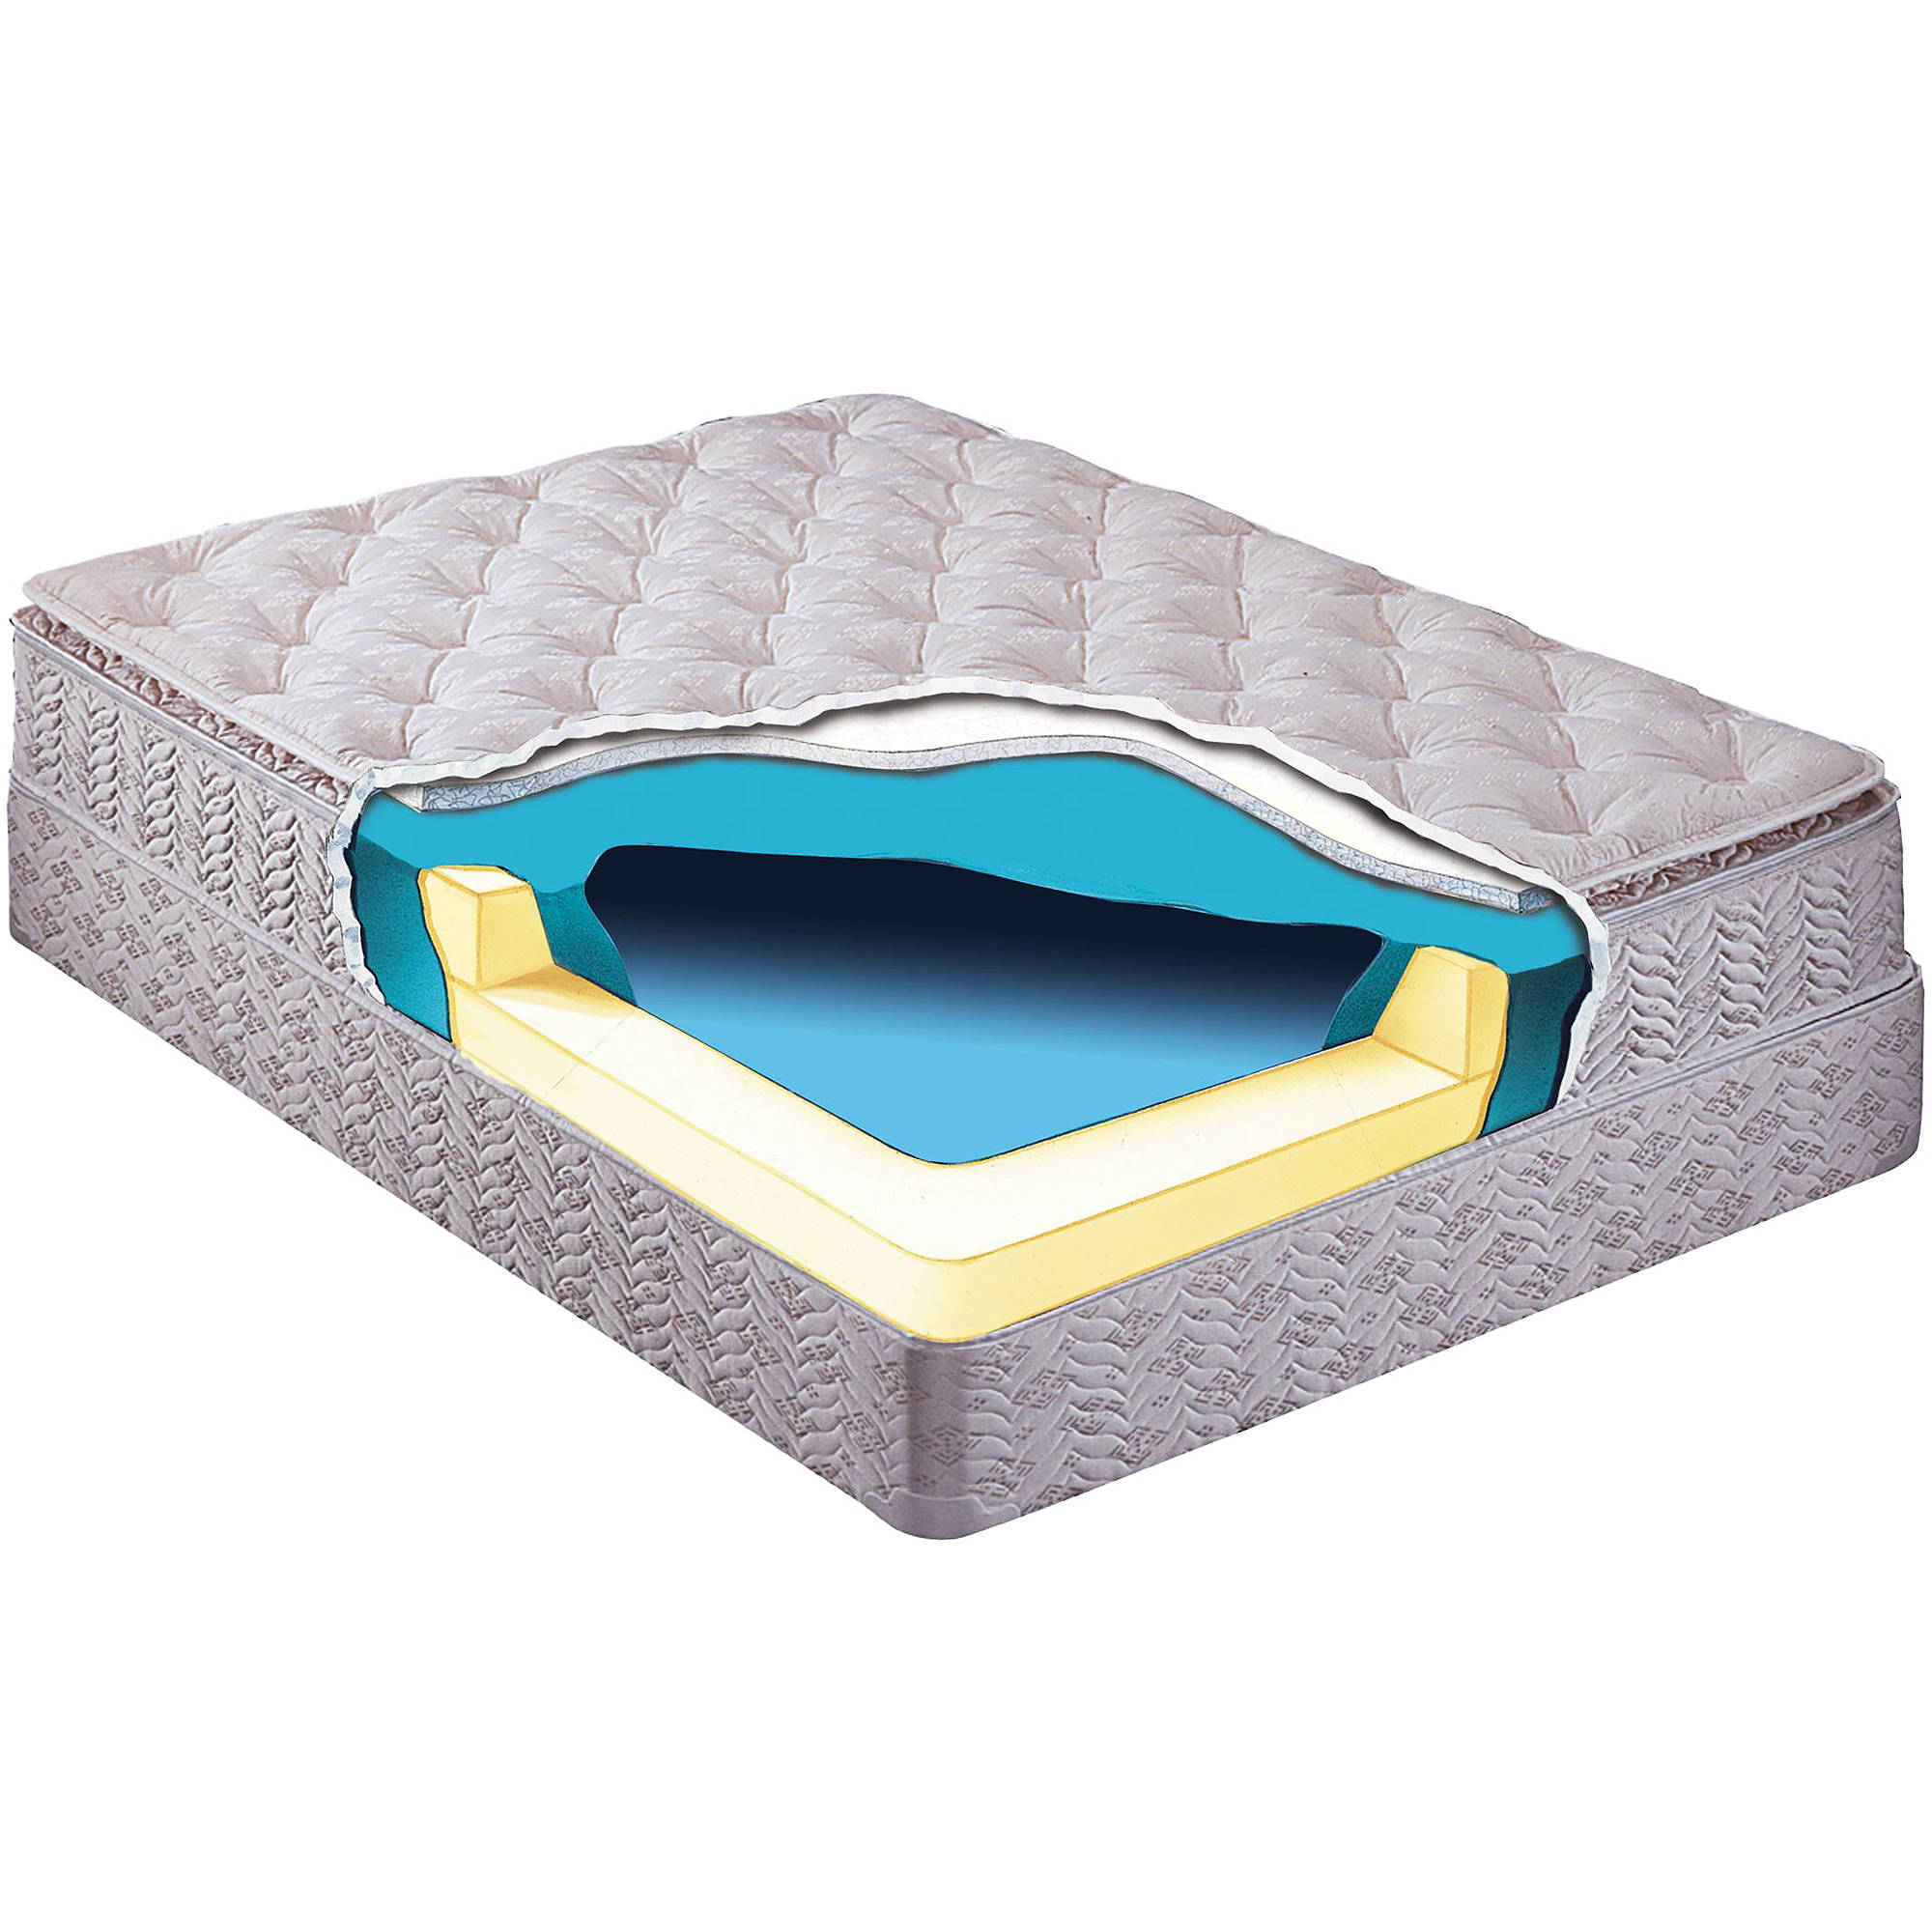 All About King Size Waterbed Mattress Venus Waterbed Freeflow Mattress - Walmart.com